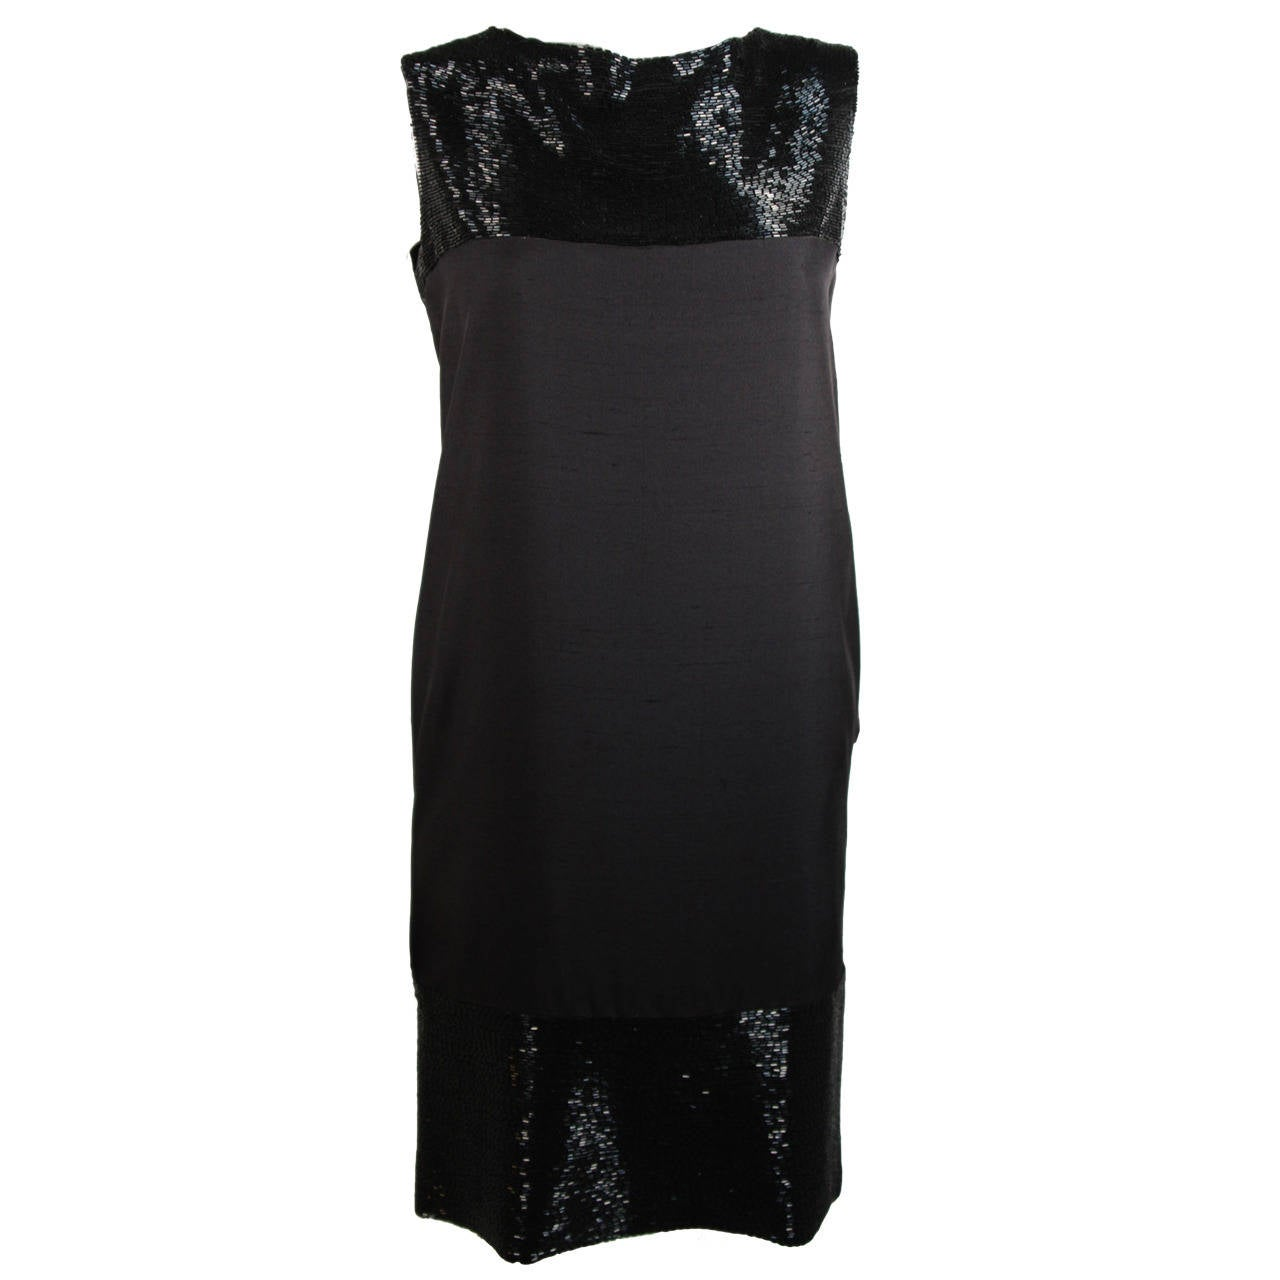 Elizabeth Mason Couture Silk Beaded Cocktail Dress Size 2 (or made to measure)